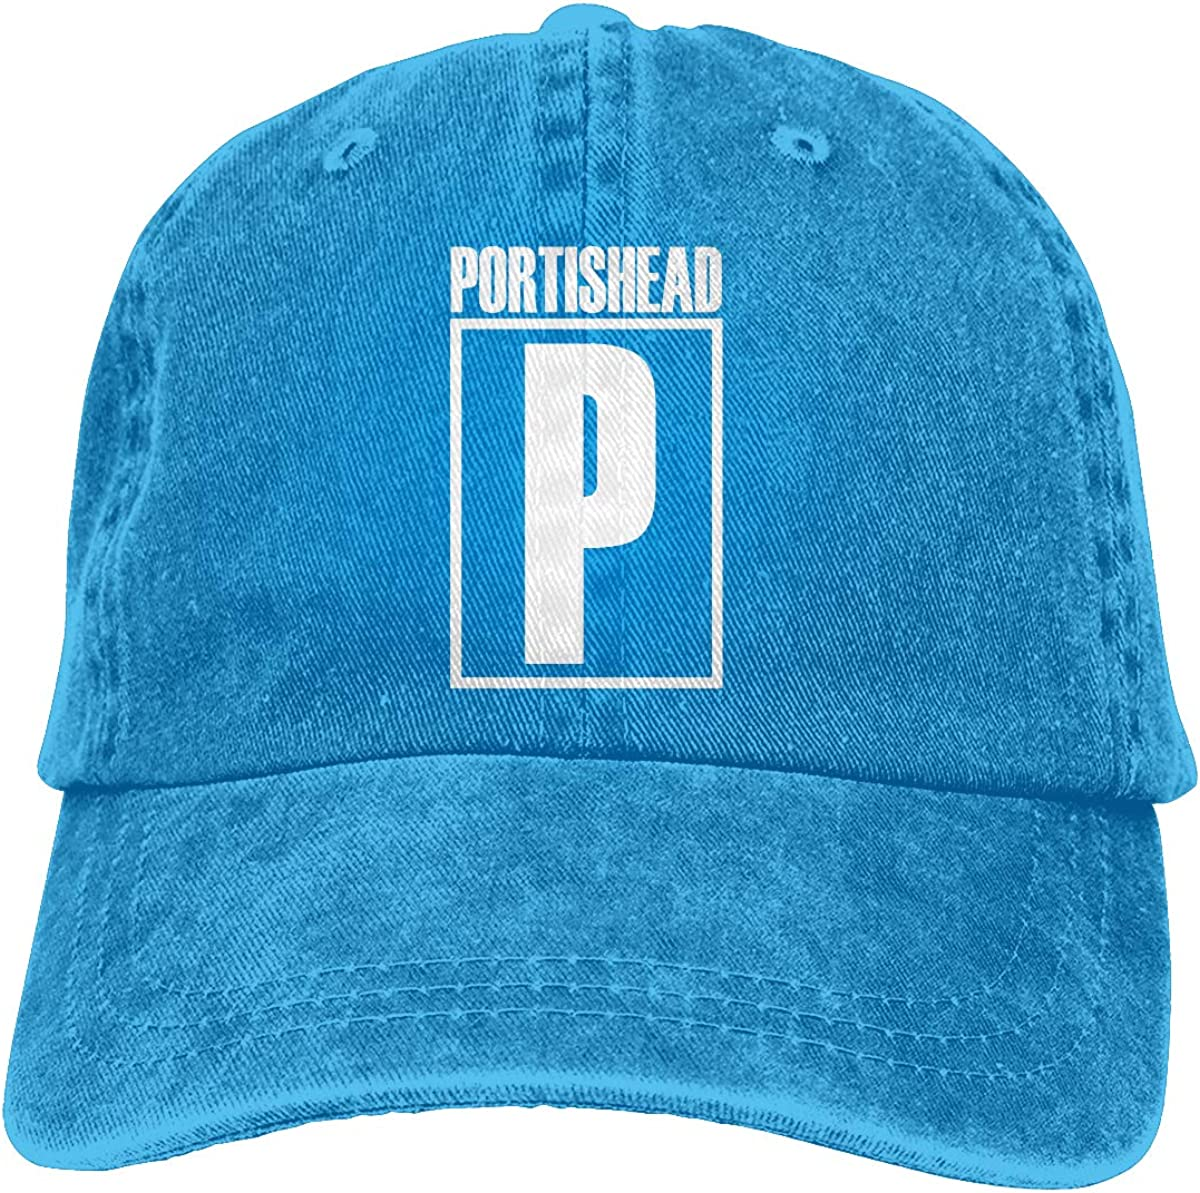 ORYISGAD Portishead Sports Cap for Mens and Womens